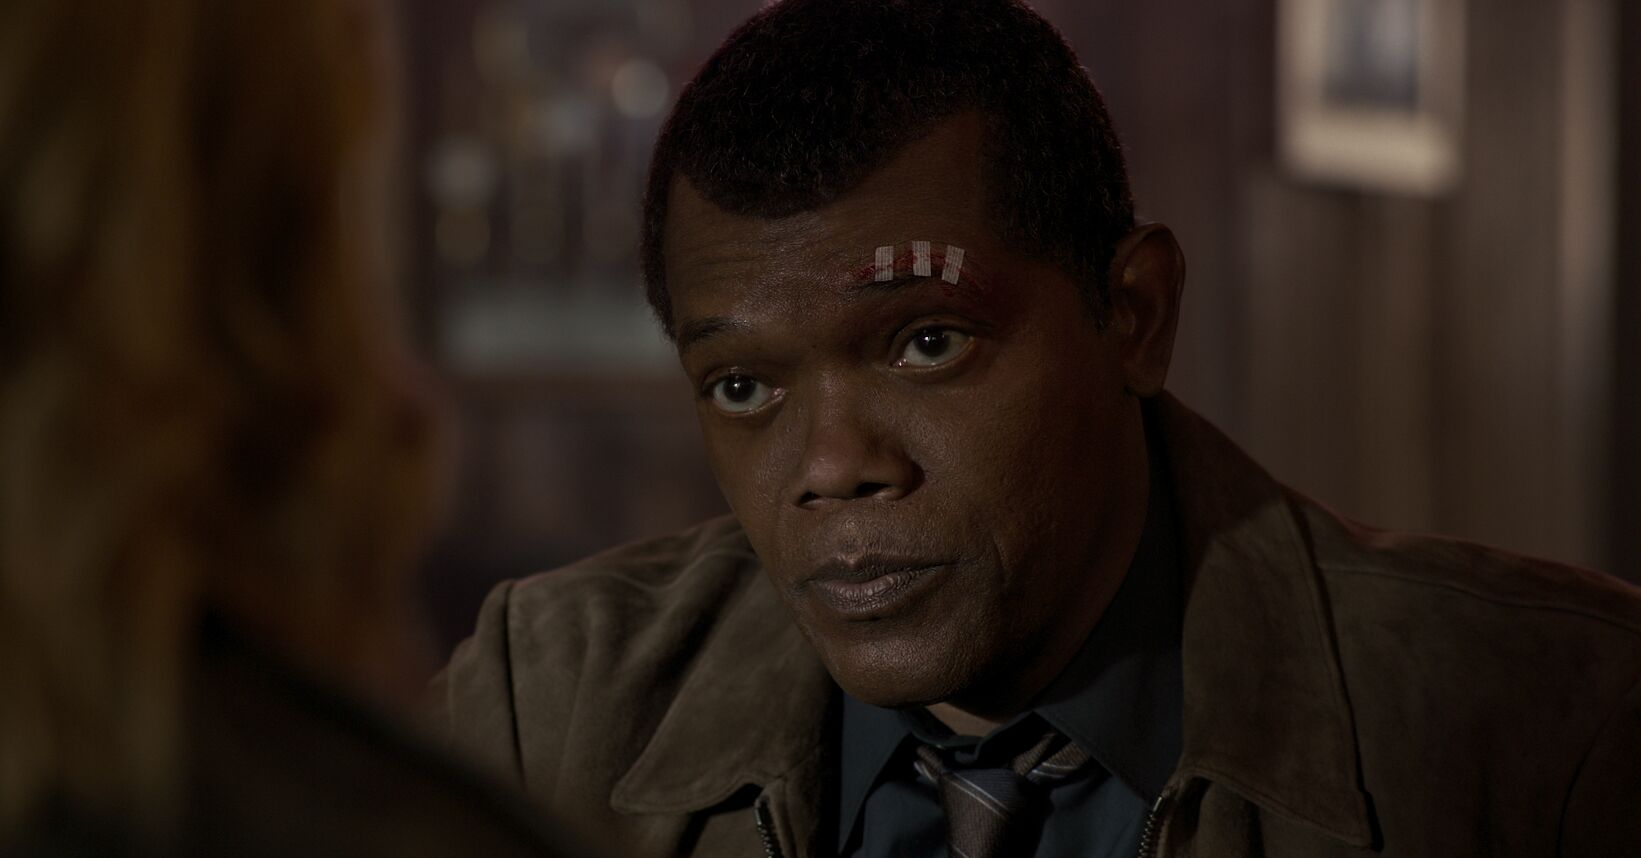 Captain Marvel: Nick Fury almost lost his eye in a different way